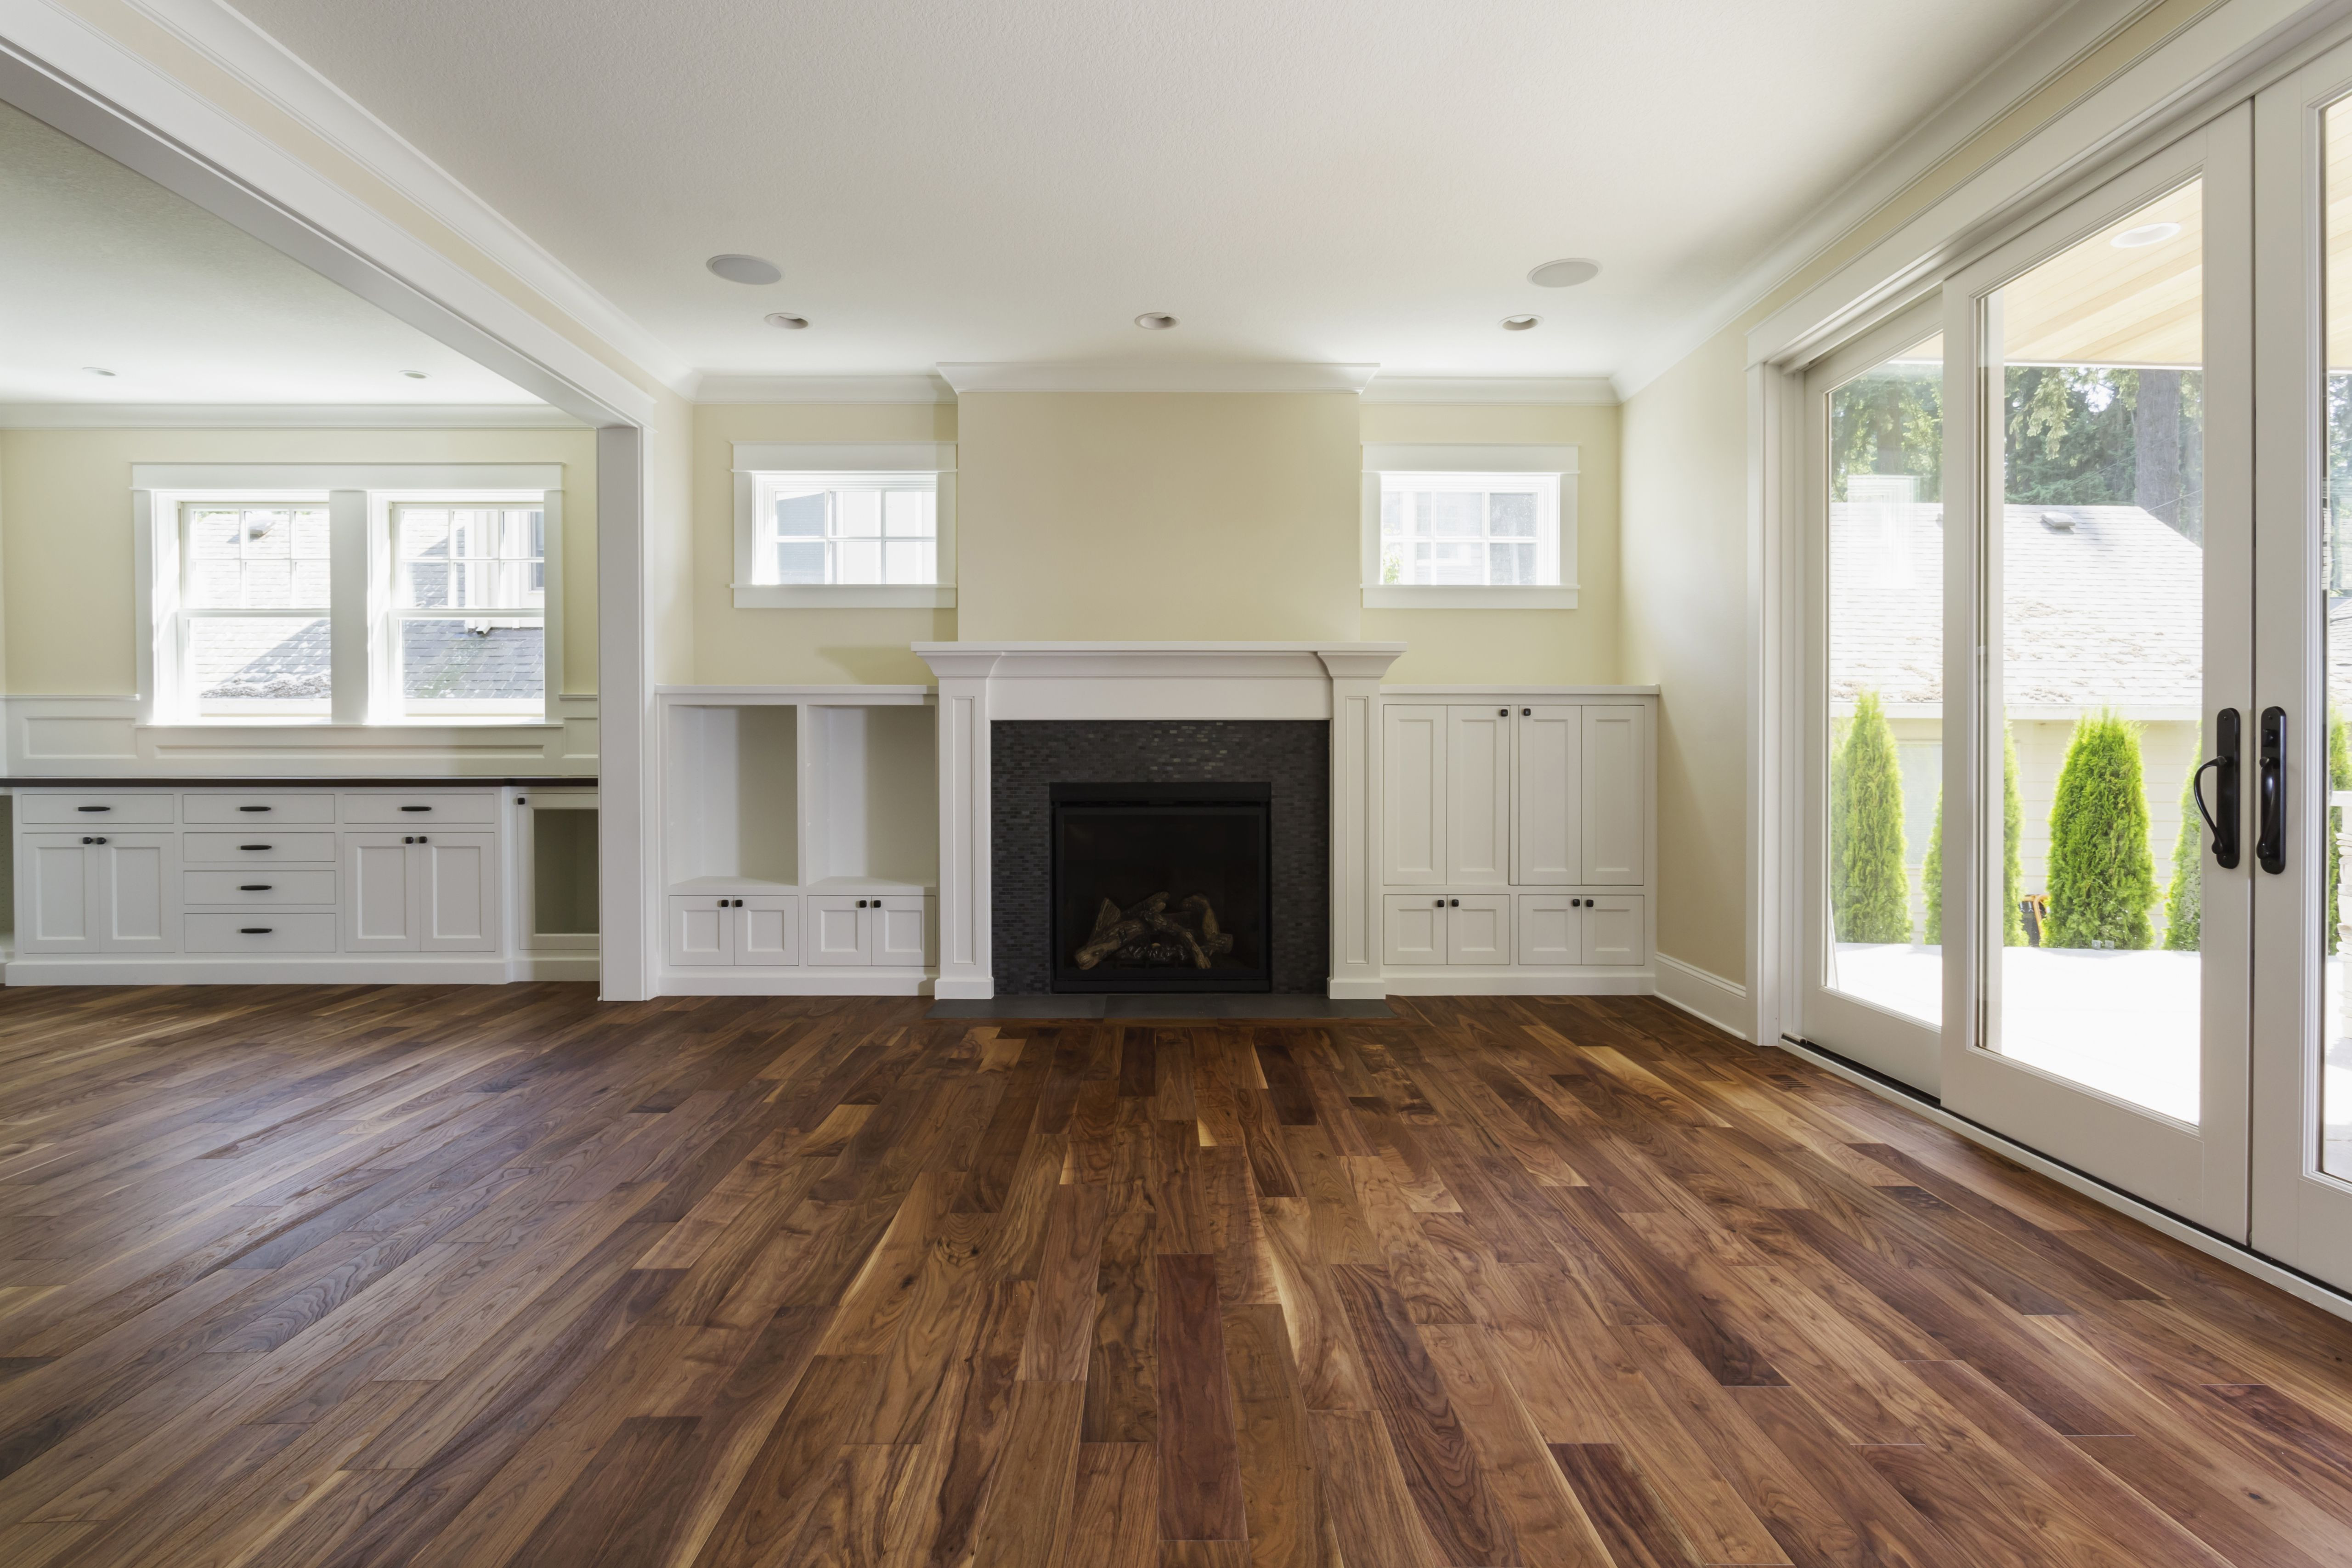 bruce engineered hardwood floors of the pros and cons of prefinished hardwood flooring regarding fireplace and built in shelves in living room 482143011 57bef8e33df78cc16e035397